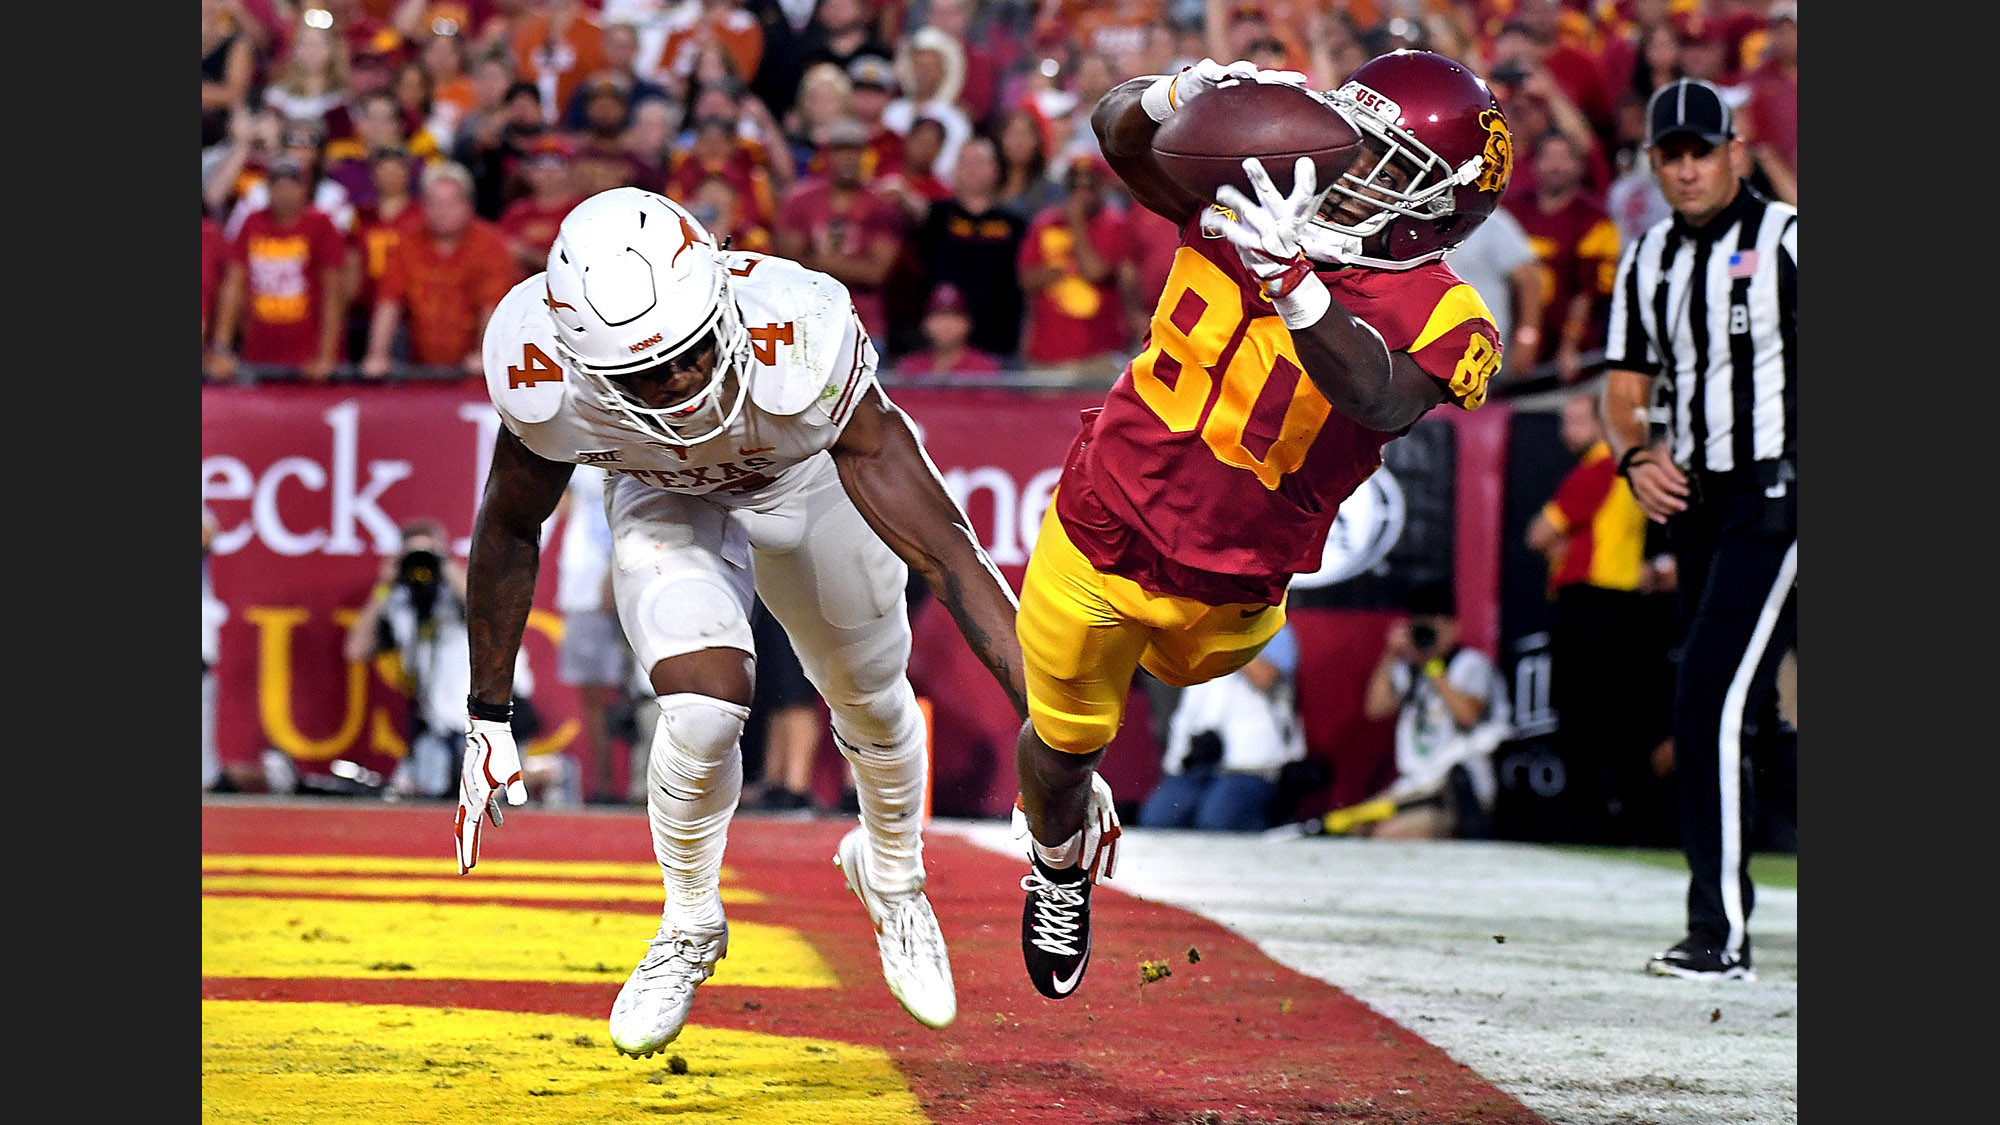 USC receiver Deontay Burnett catches a touchdown pass in front of Texas defensive back DeShon Elliott during the second quarter of a game at the Coliseum. (Wally Skalij / Los Angeles Times)